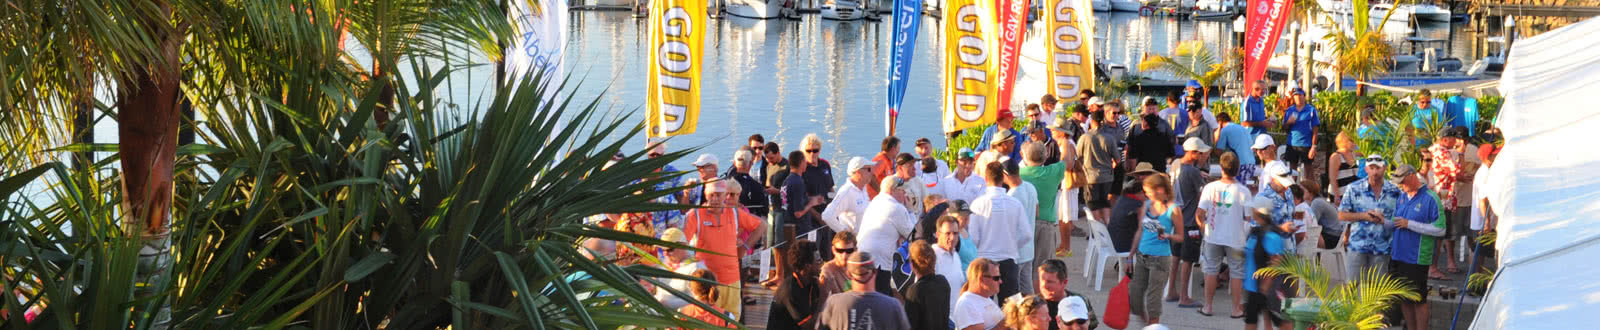 Abell Point Marina Events 2016